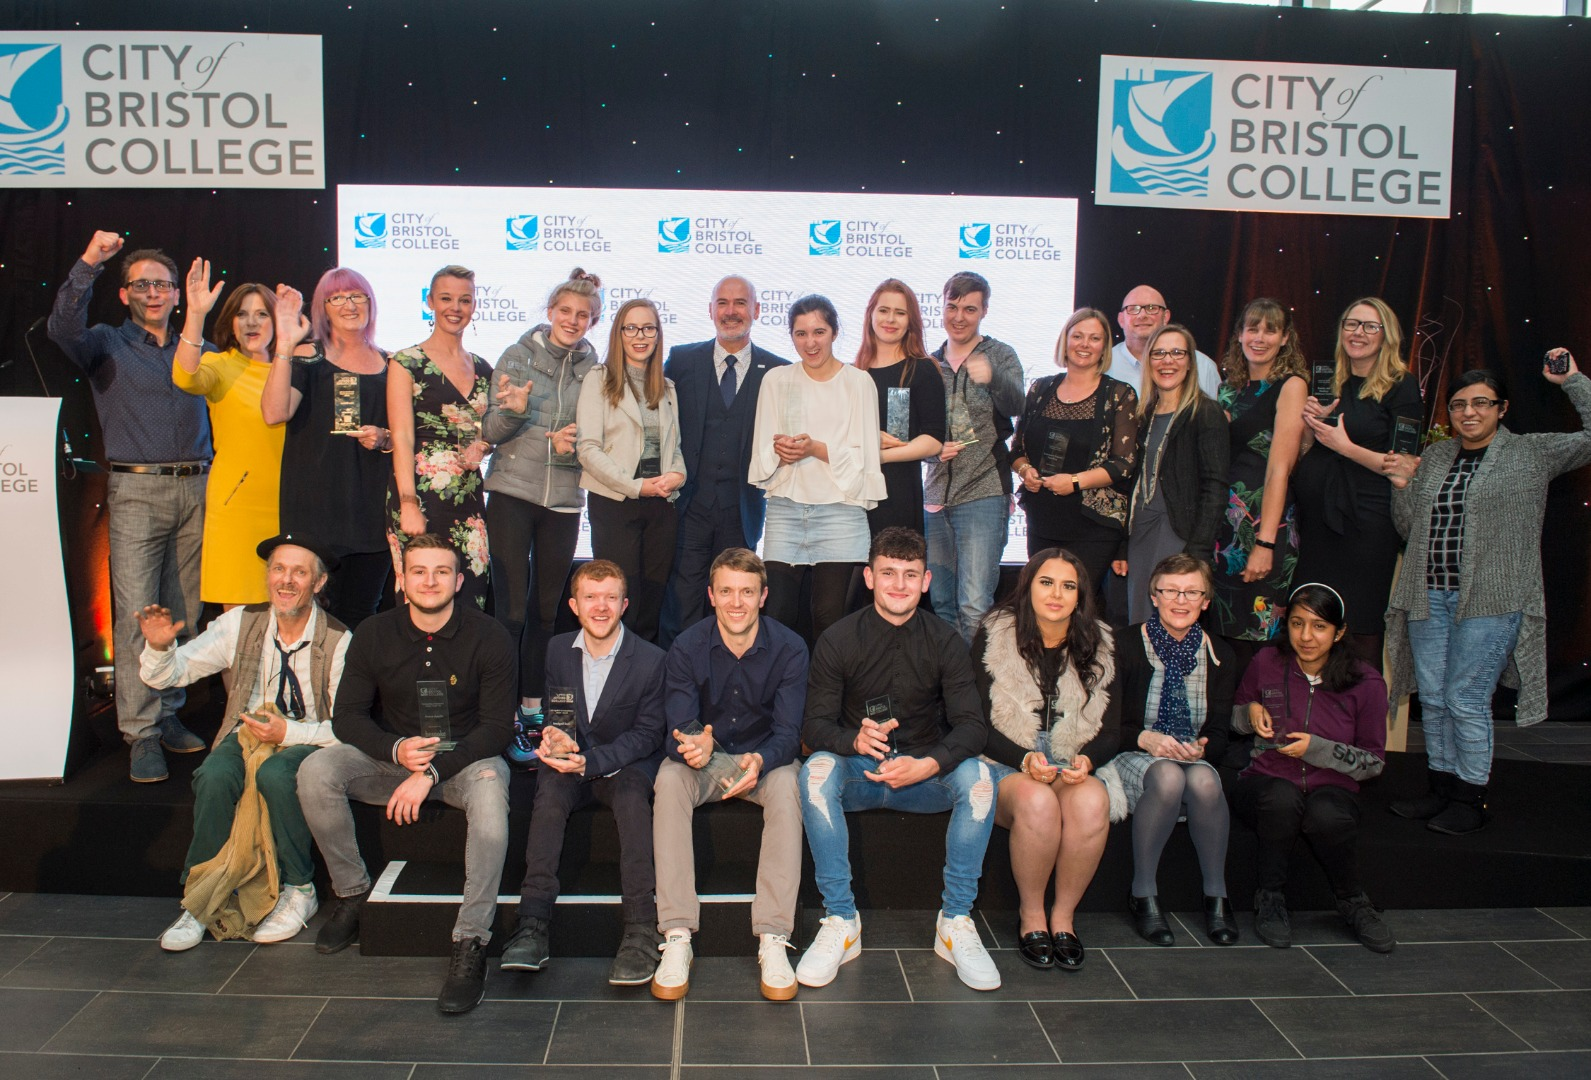 Students of City of Bristol College celebrate on stage as they hold their awards